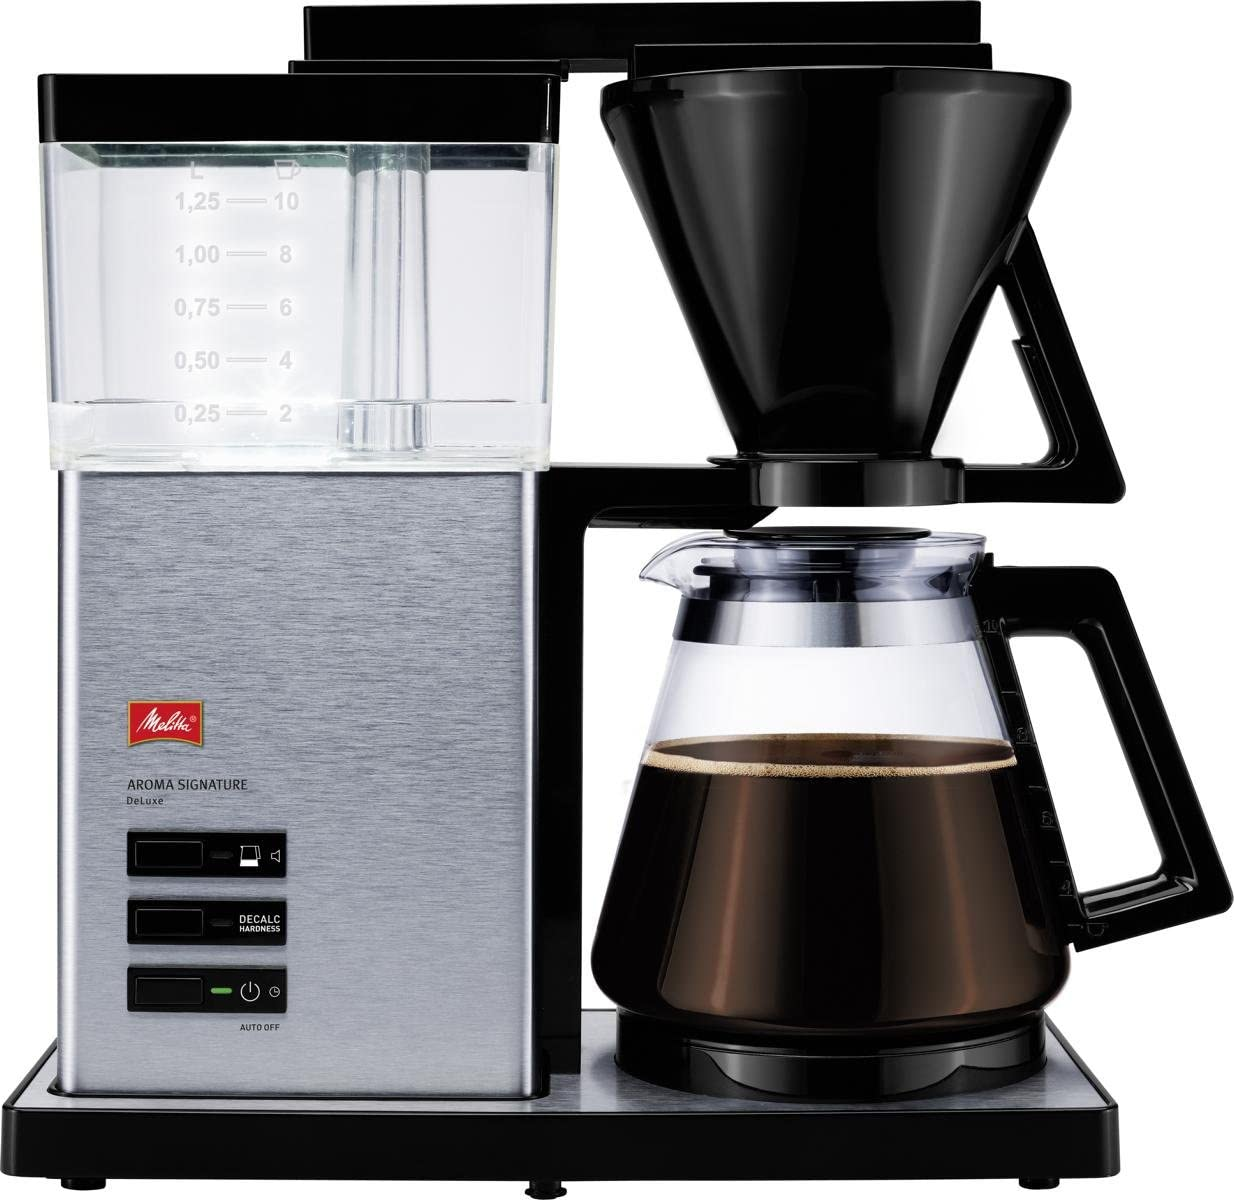 Melitta Aroma Signature Deluxe 1007 02 Filter Coffee Machine With Glass Jug Timer And Programmable Warmer Black